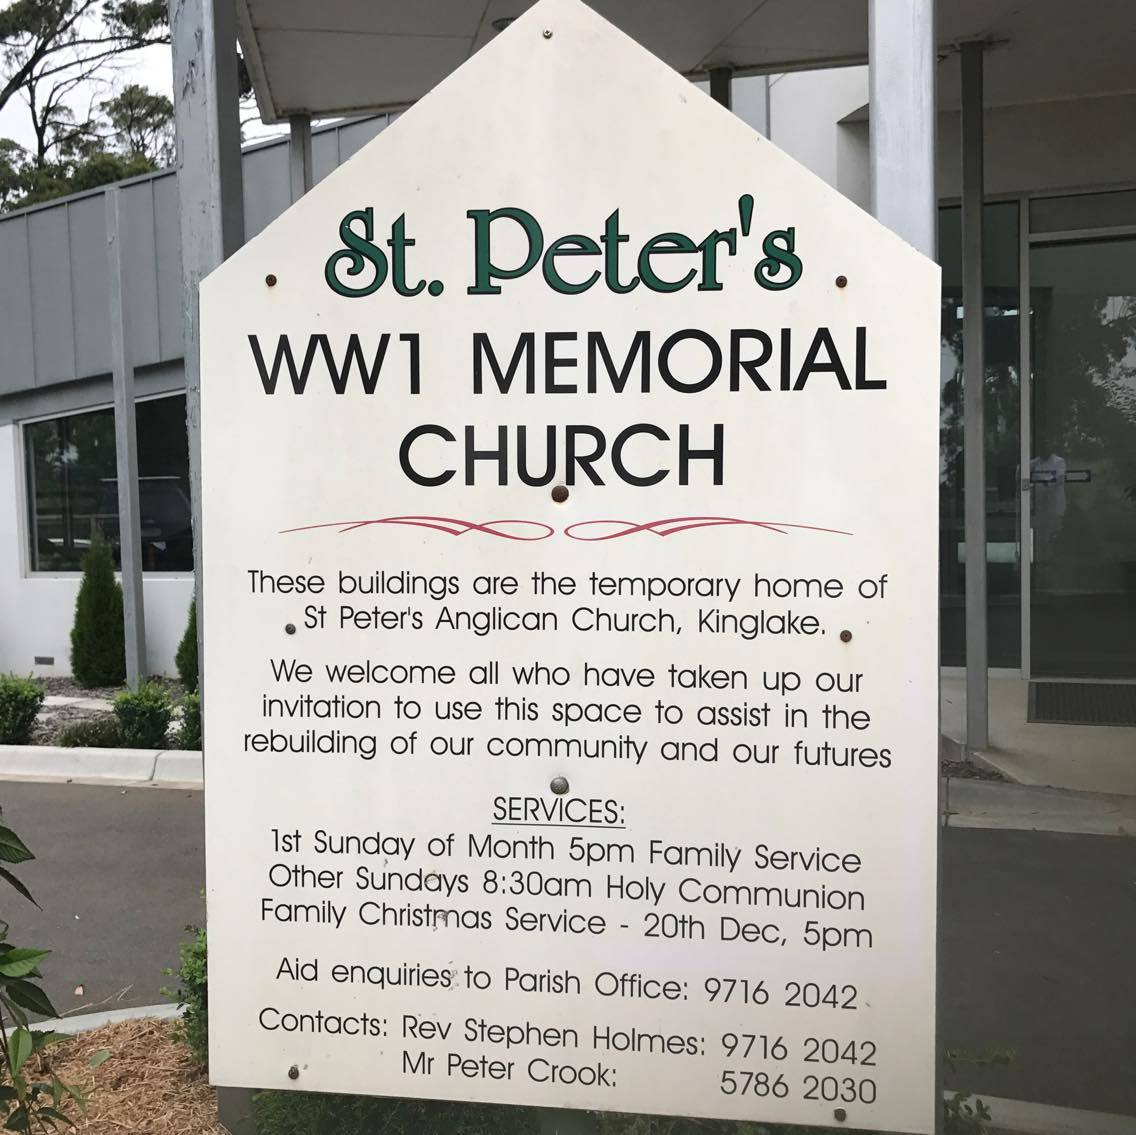 St Peter's WW1 Memorial Church sign